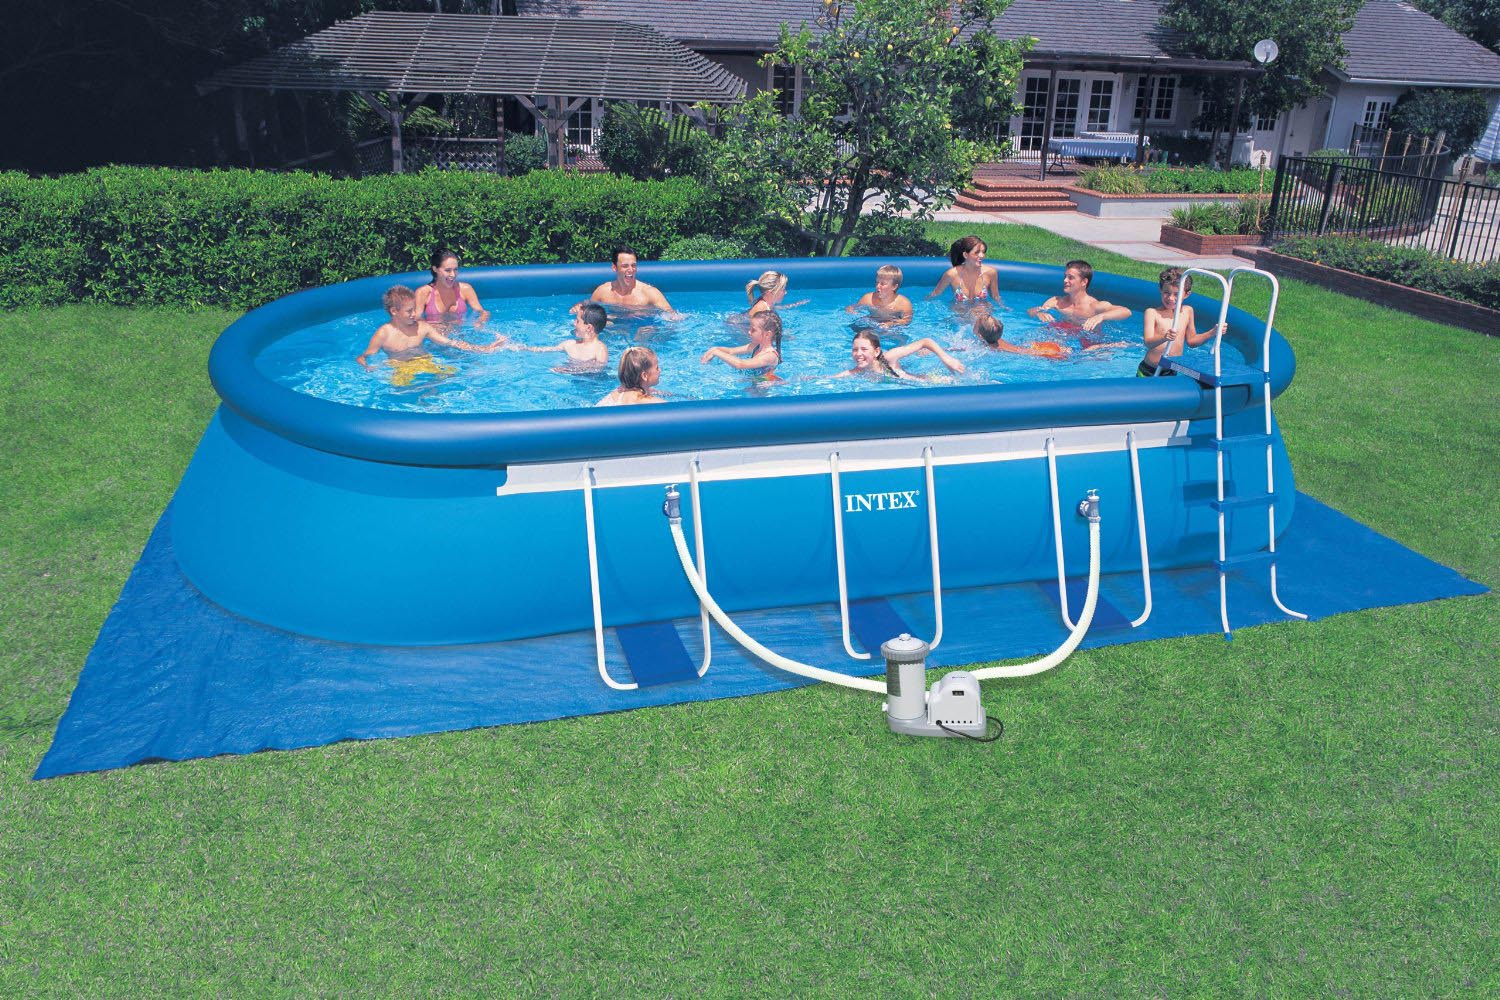 intex portable swimming pools backyard design ideas. Black Bedroom Furniture Sets. Home Design Ideas